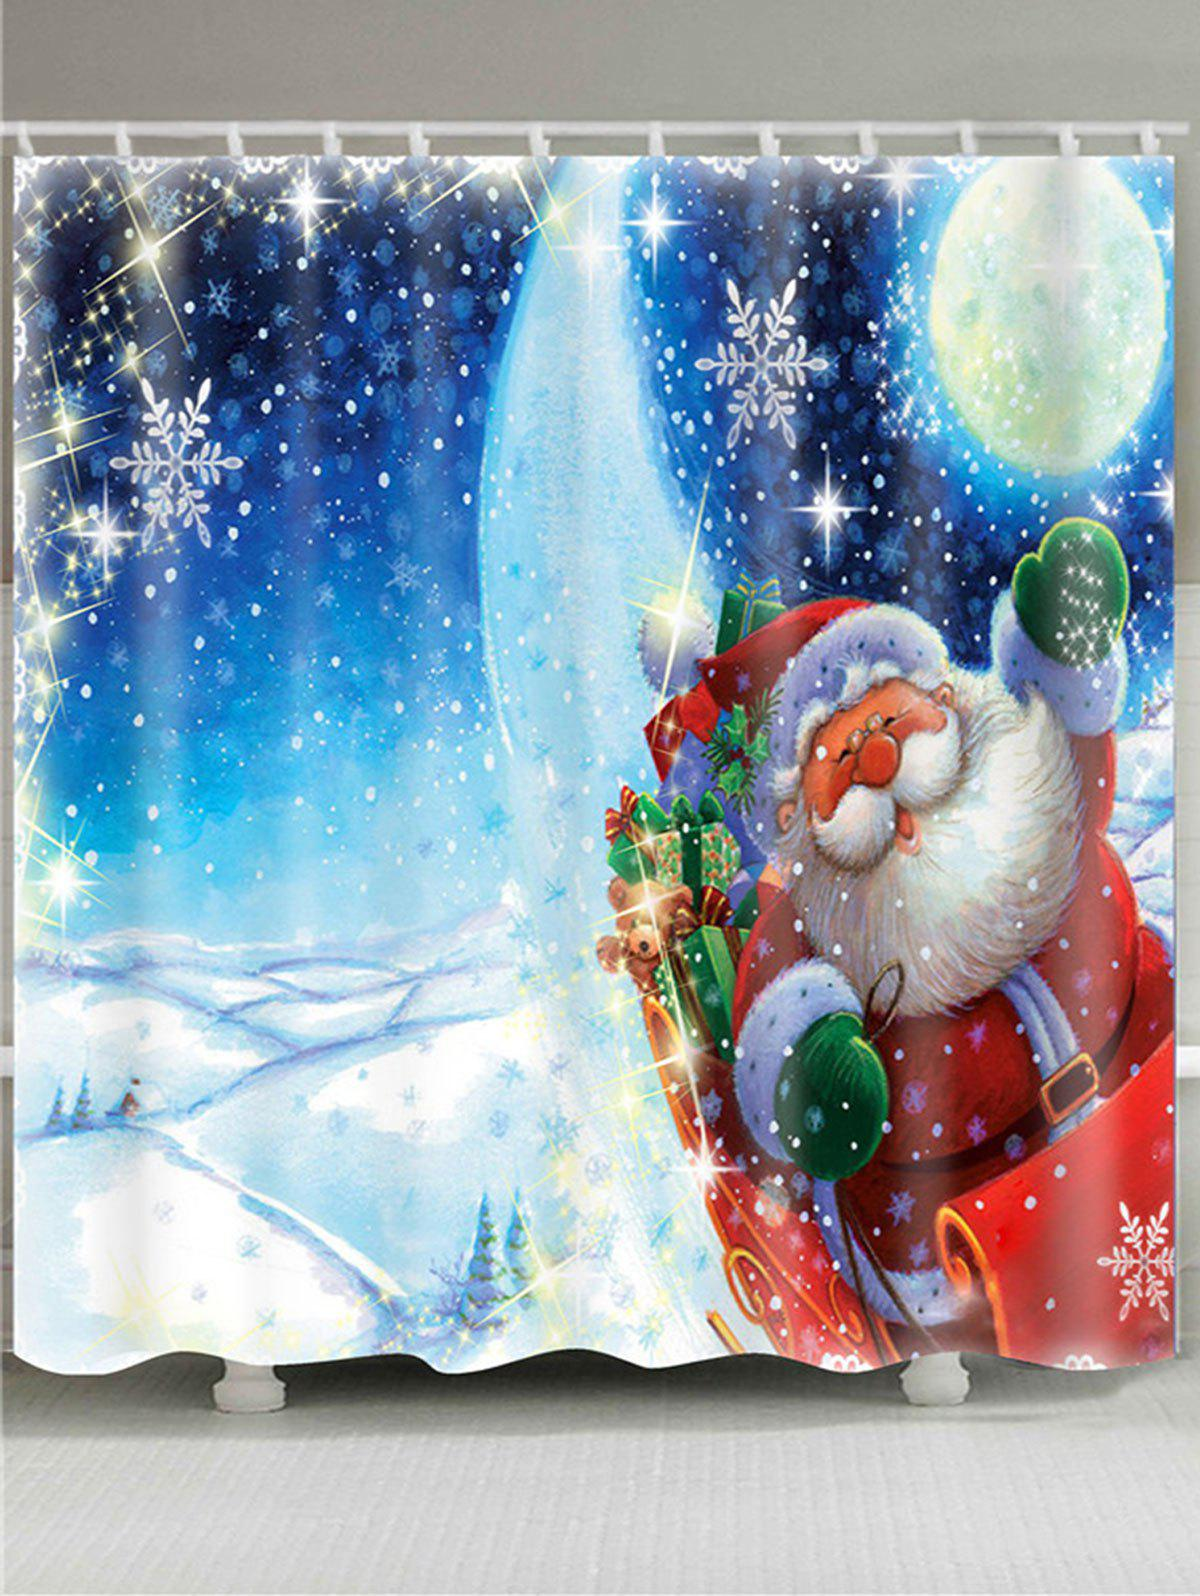 Waterproof Father Christmas Lighting Pattern Shower Curtain christmas ball candle waterproof shower curtain